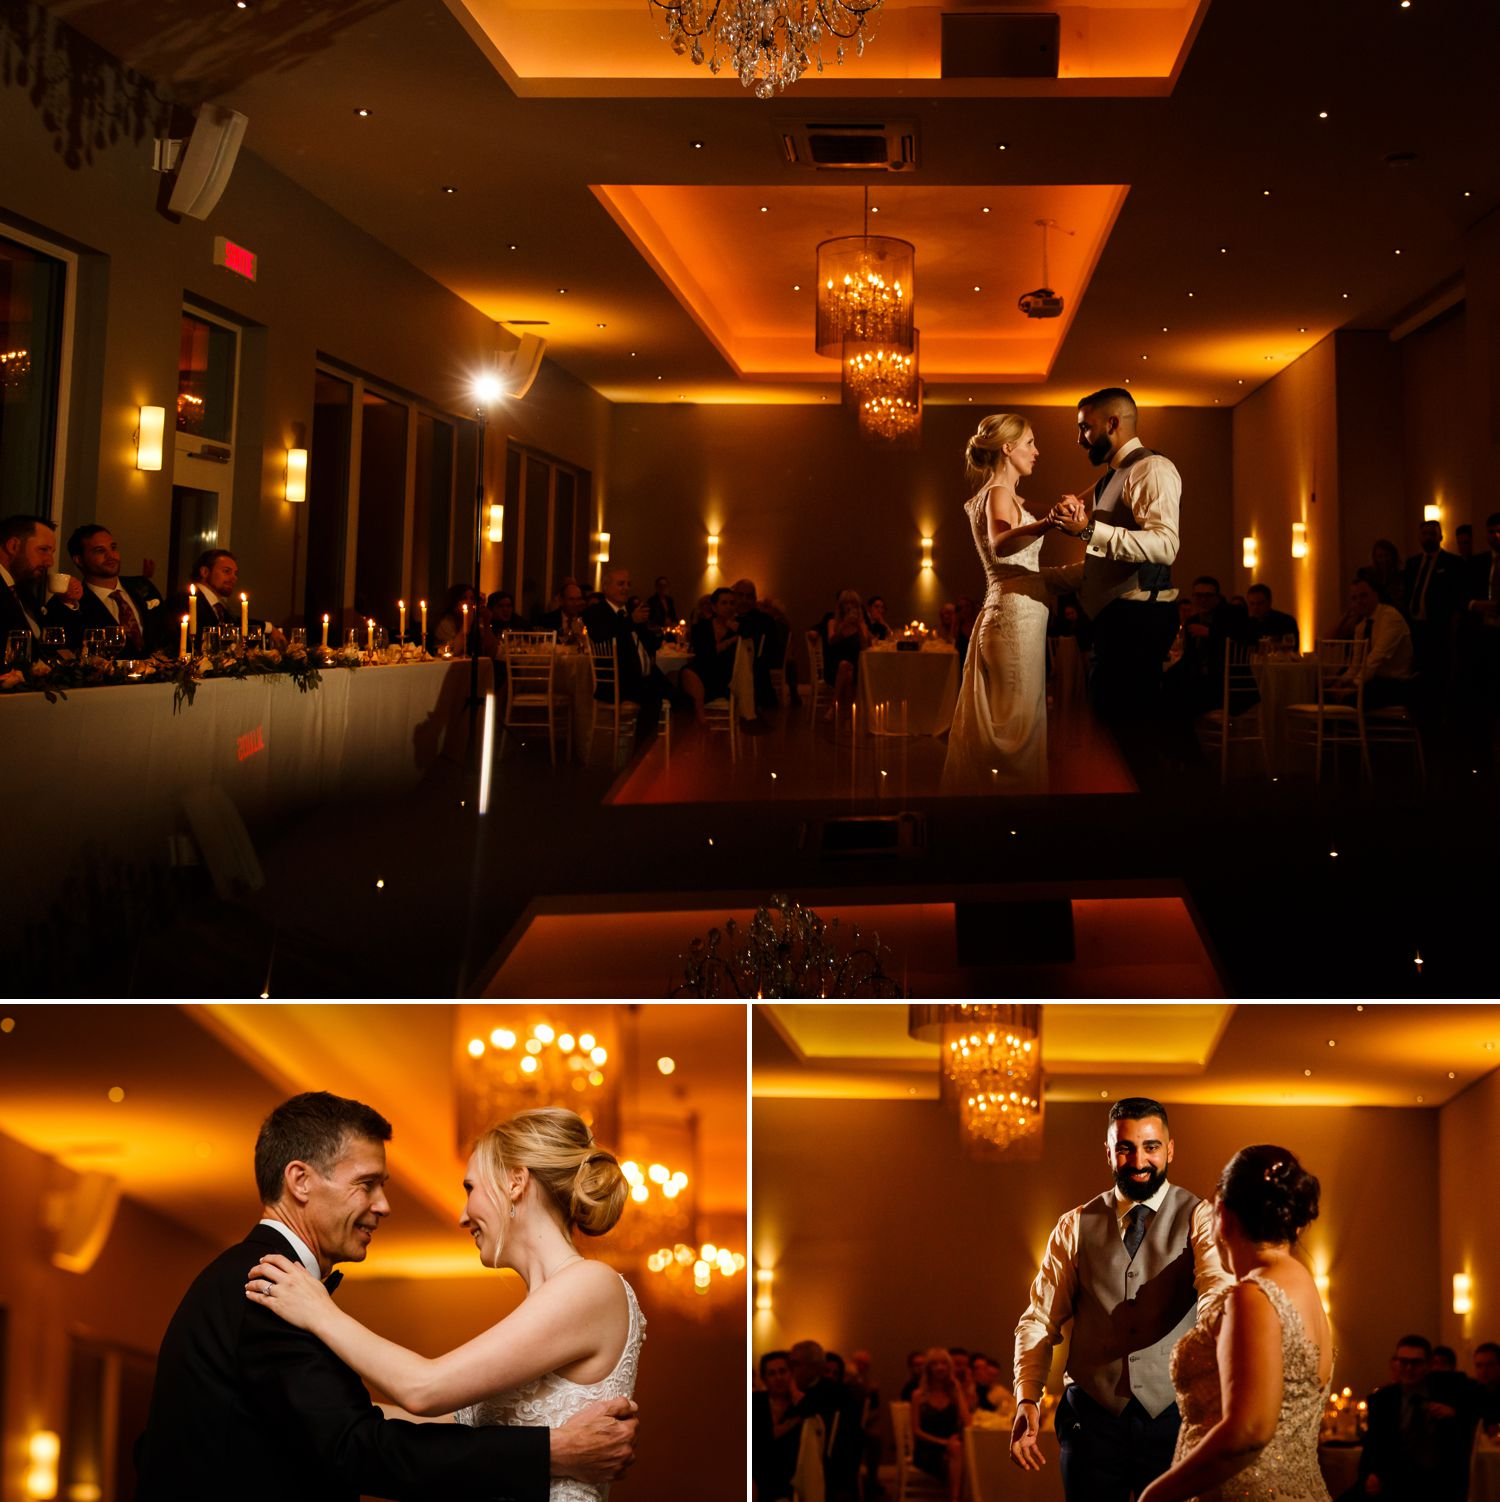 The bride and groom during their first dances at their wedding reception at Le Belvedere